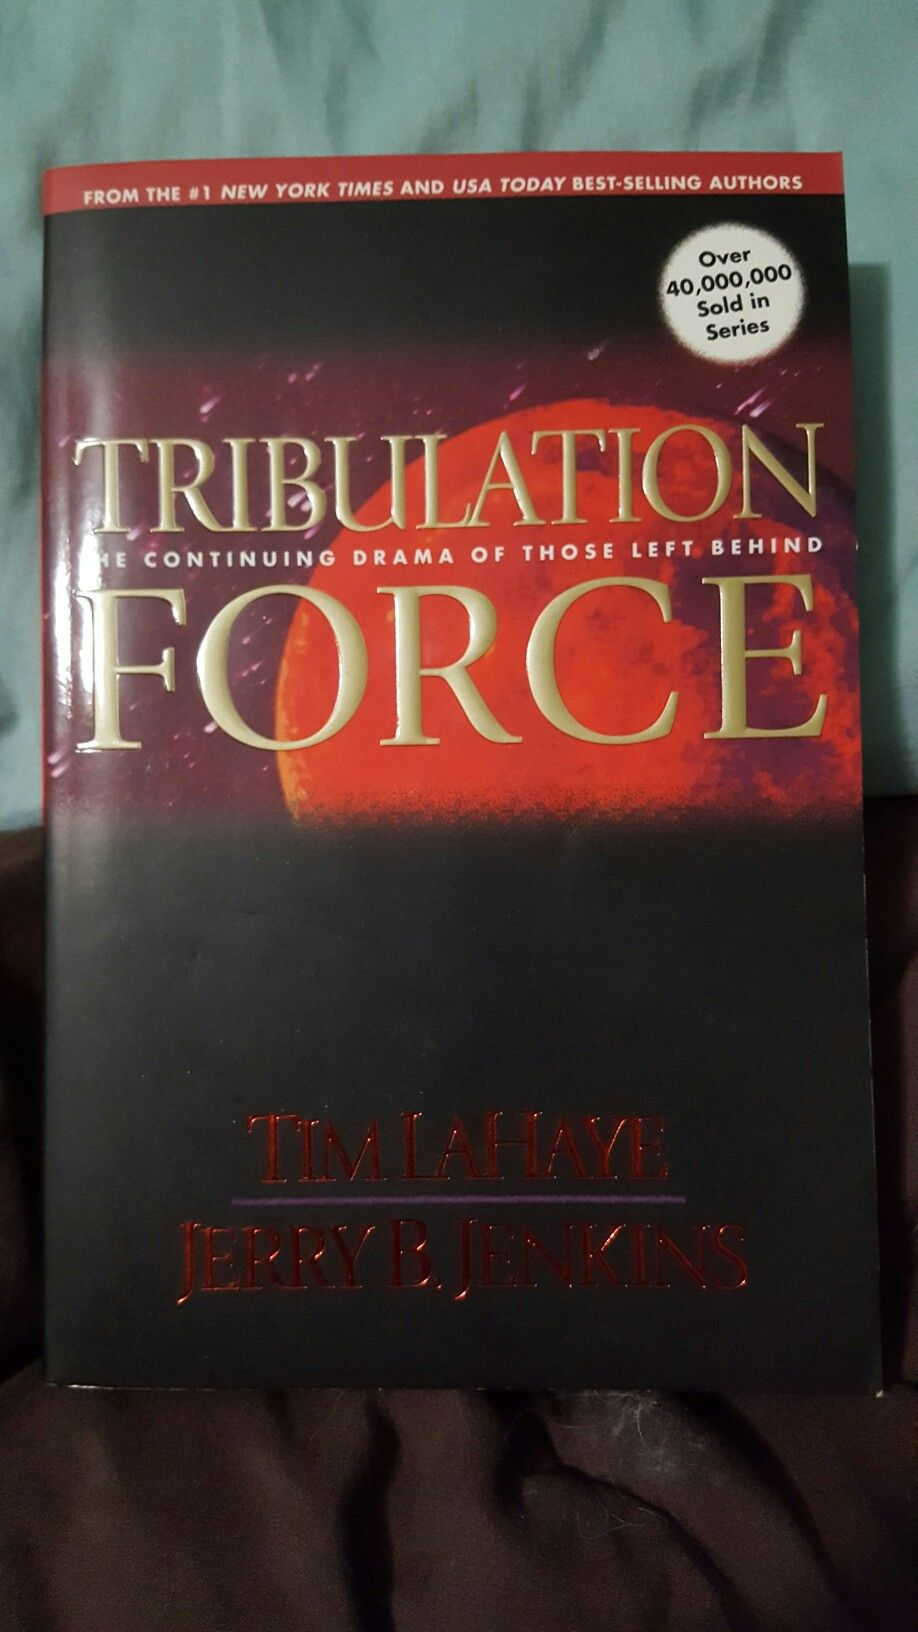 Tribulation Force Left Behind Series Book 2 Eurorack Ub1204fxpro Array Tim Lahaye And Jerry B Jenkins Rh Pinterest Co